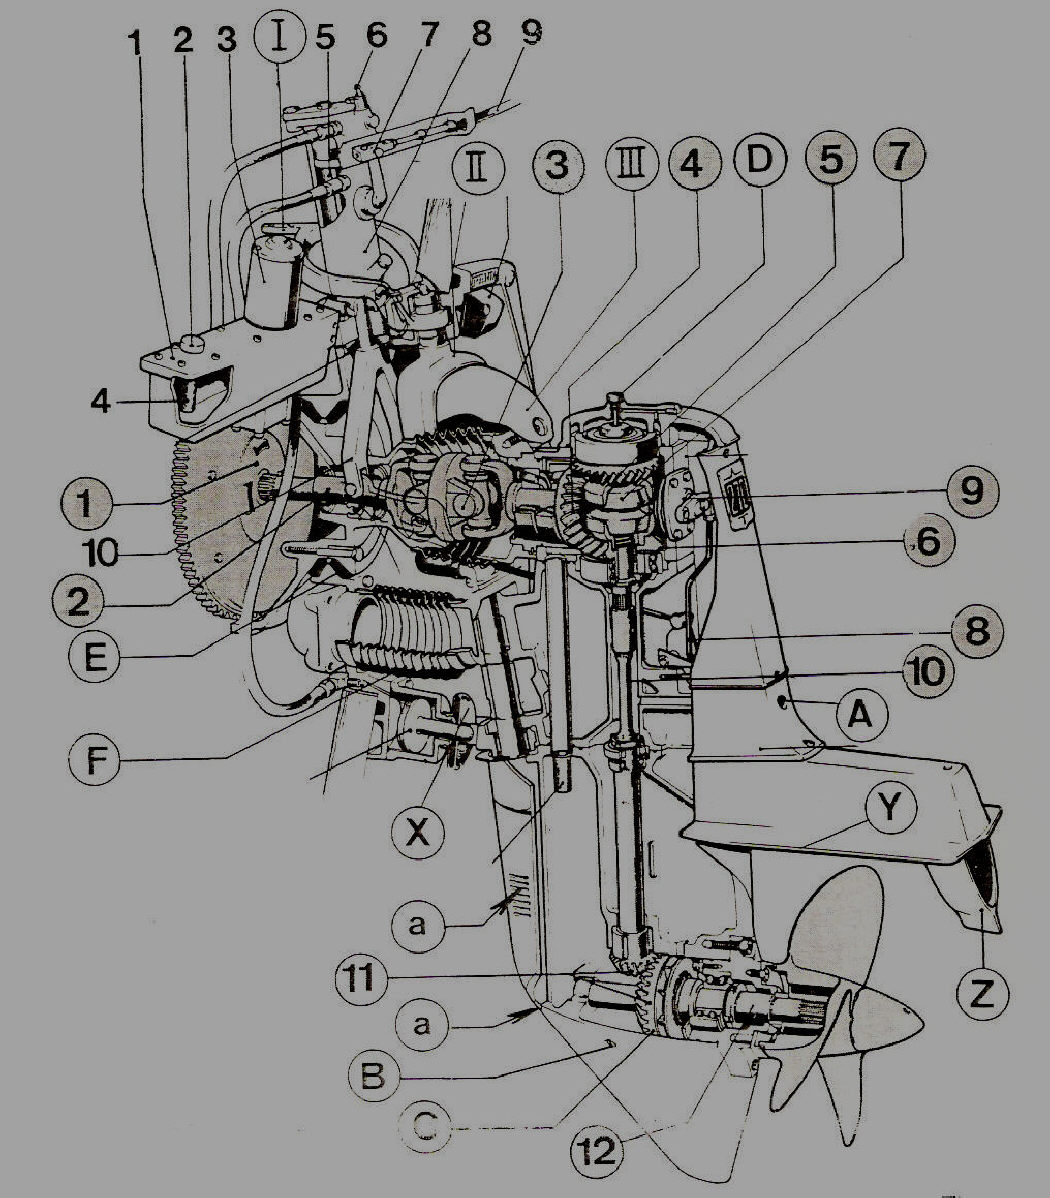 Wiring Diagram For Mercruiser Stern Drive Wiring Diagram